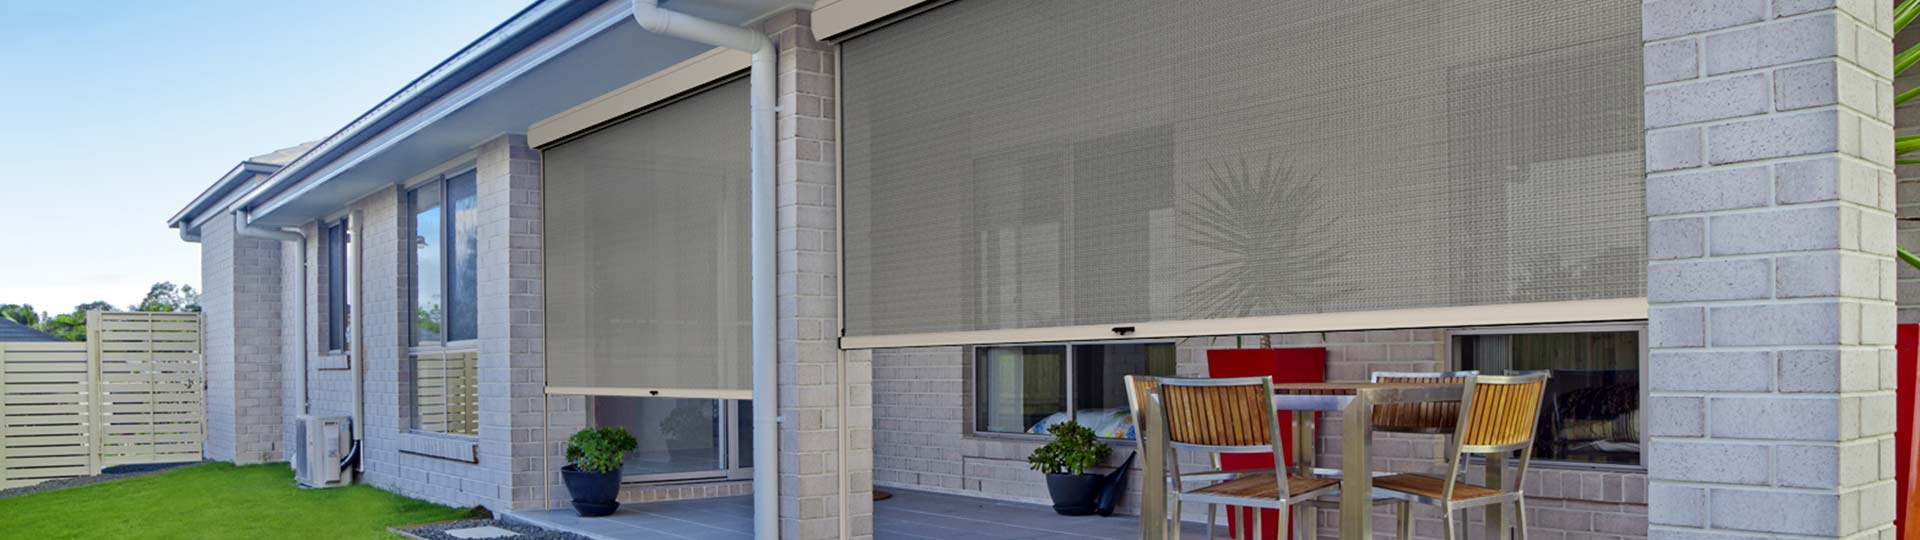 Outdoor Blinds Ziptrak Blinds Indoor Blinds Awnings within proportions 1920 X 540